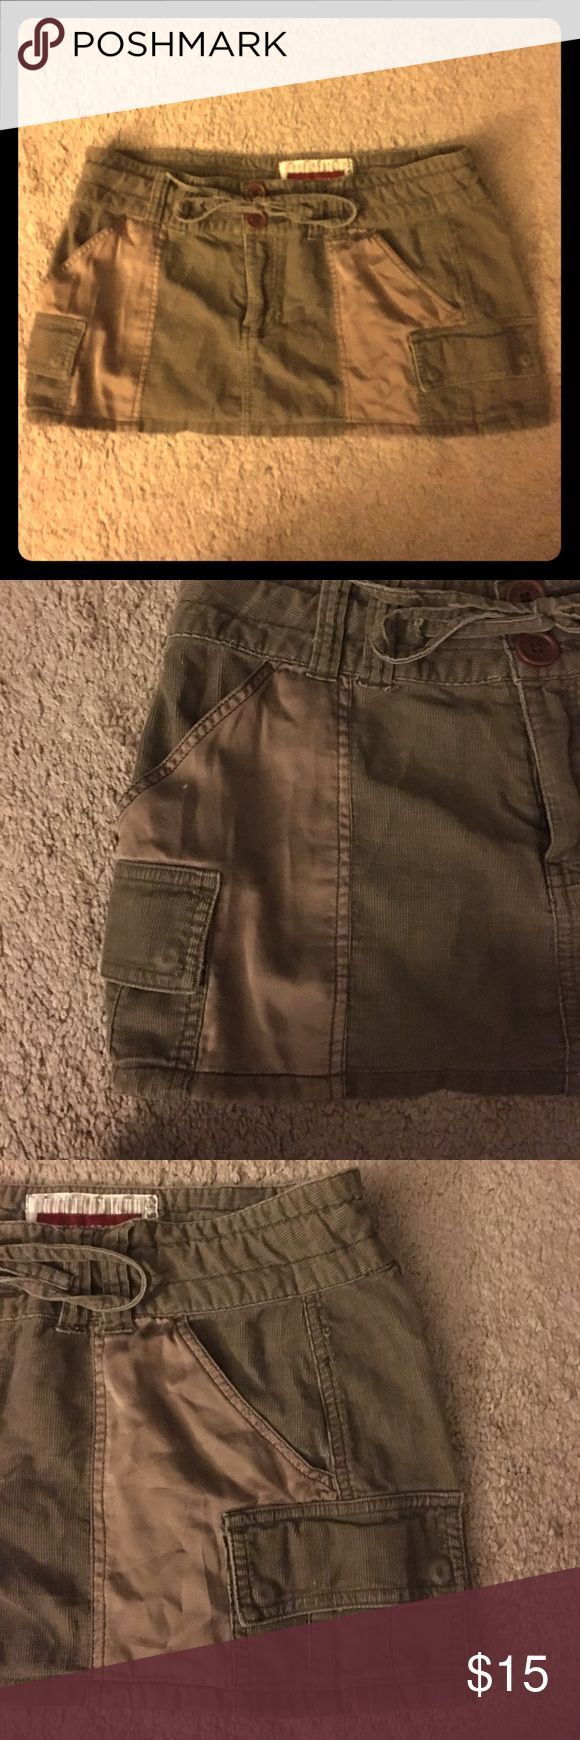 HOLLISTER skirt Hollister skirt. One of my absolute favorite skirts I've EVER had!!! In perfect condition!! Brown with satin brown pockets. You'll LOVE it!!! TRUST ME!!! I HATE I have to sell it!! Needs someone that can get some really good wear out of it!! Wear it cute and casual or dress it up!!😍💝 Hollister Skirts Mini